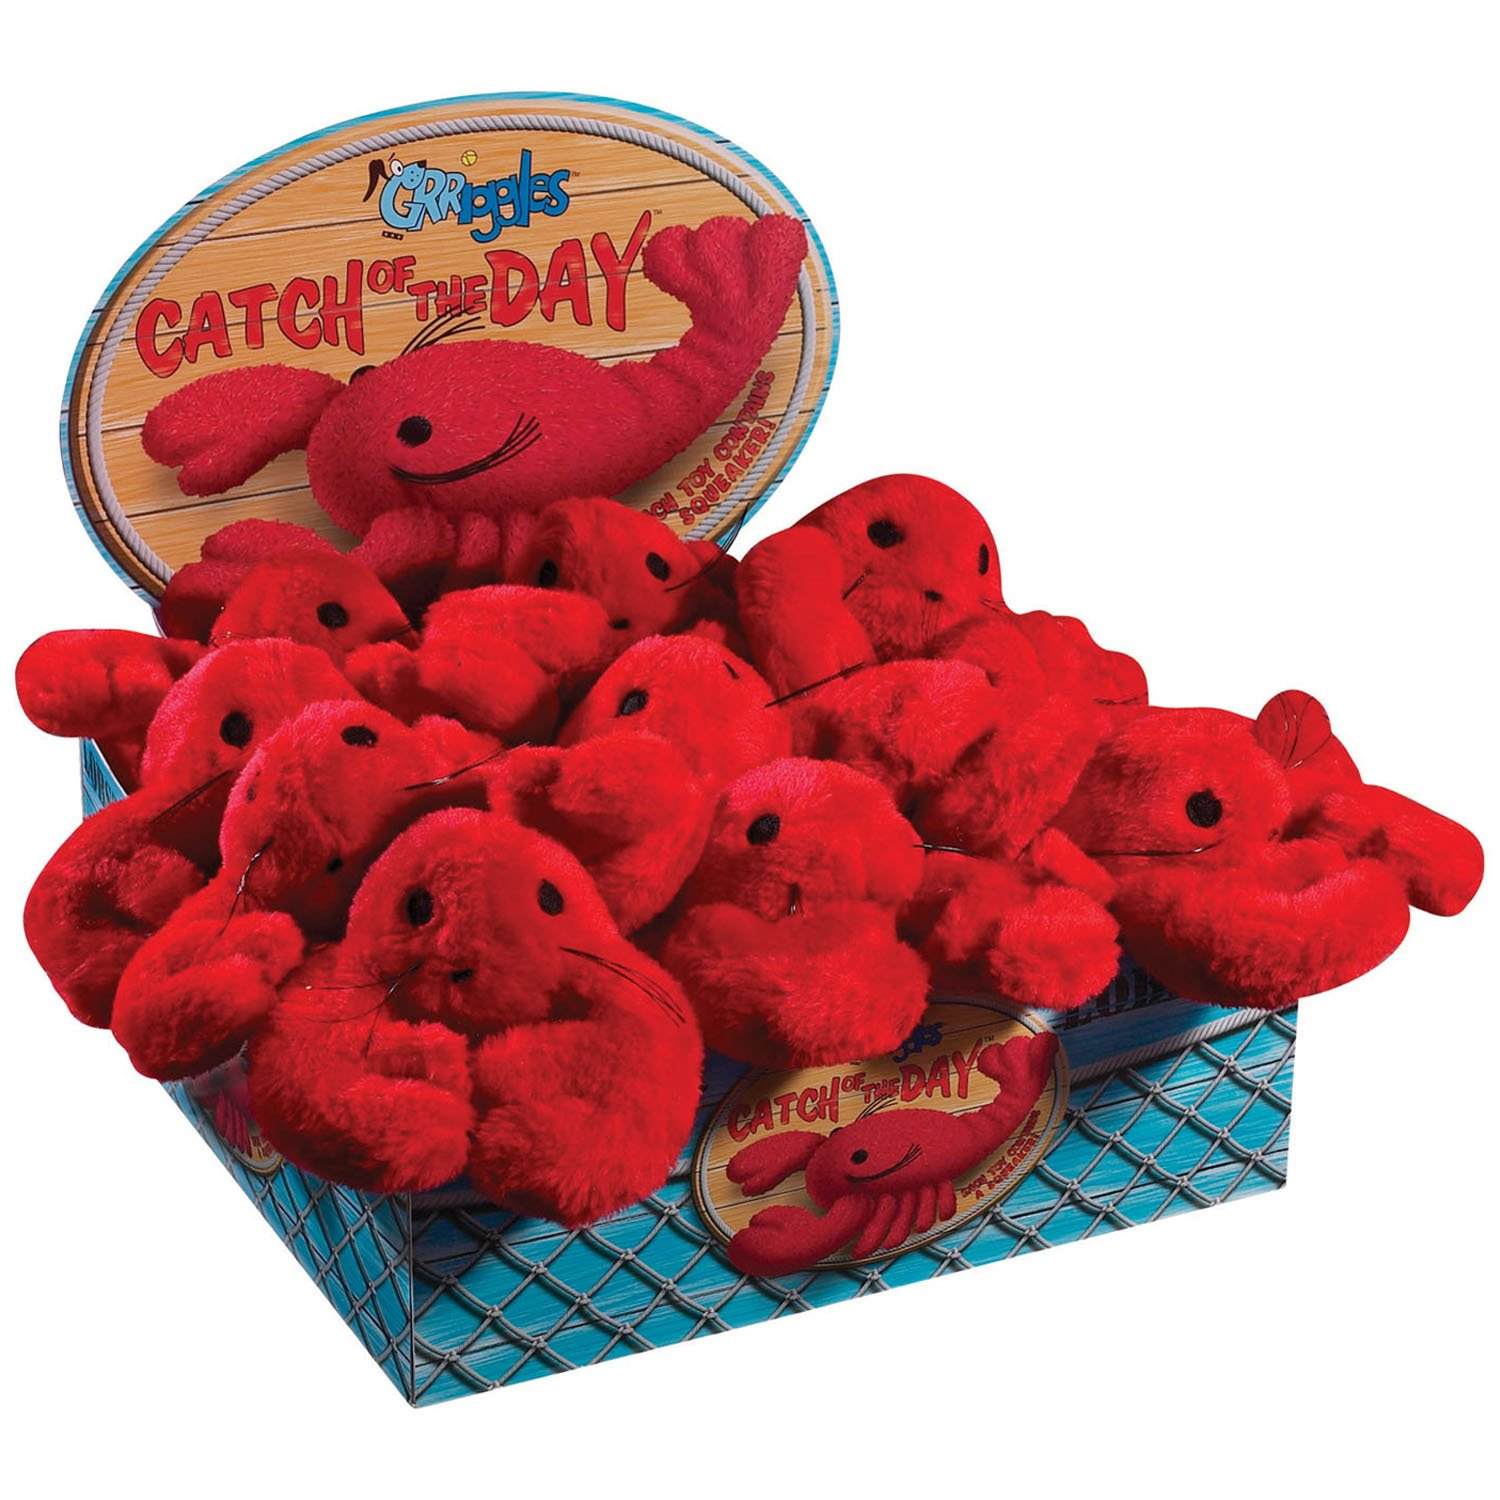 Grriggles Catch of the Day Lobster Dog Toy Display, 12-Pack